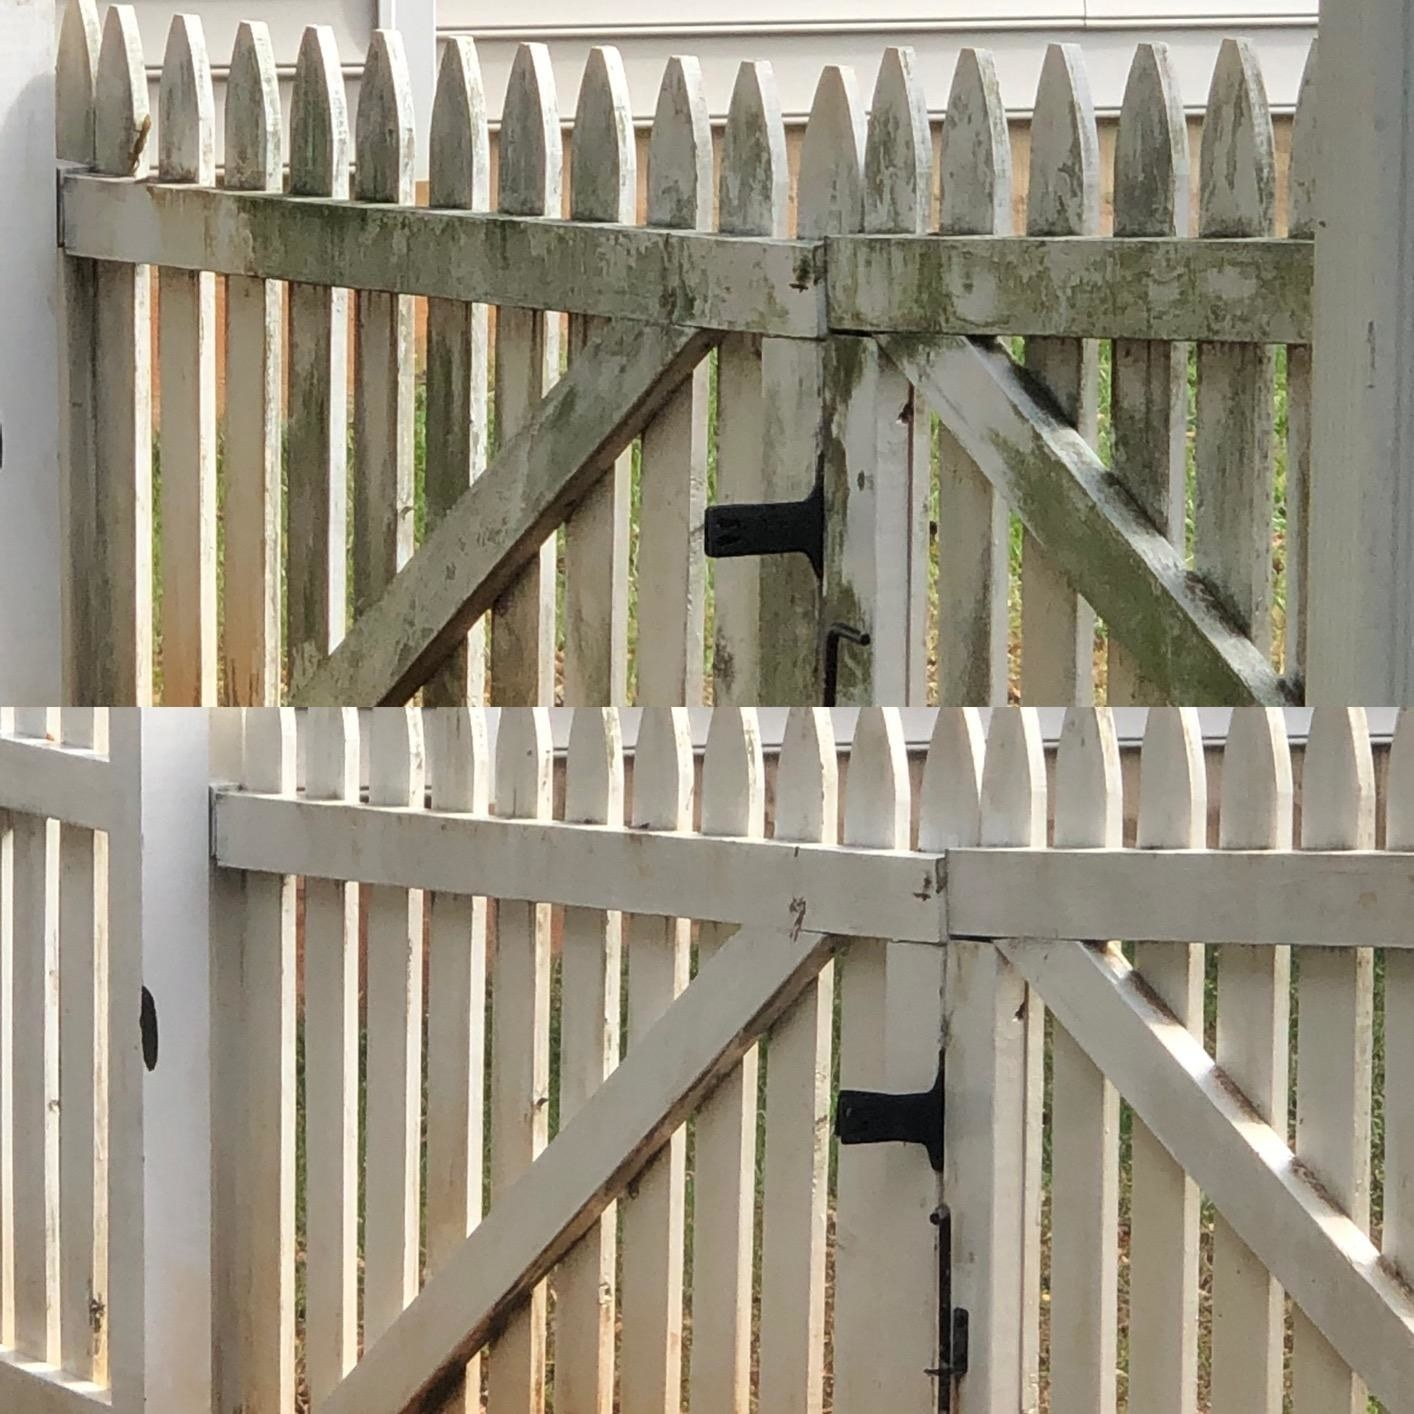 reviewer before and after pictures of a white fence; before it is green and covered in mildew, and after it is clean and white